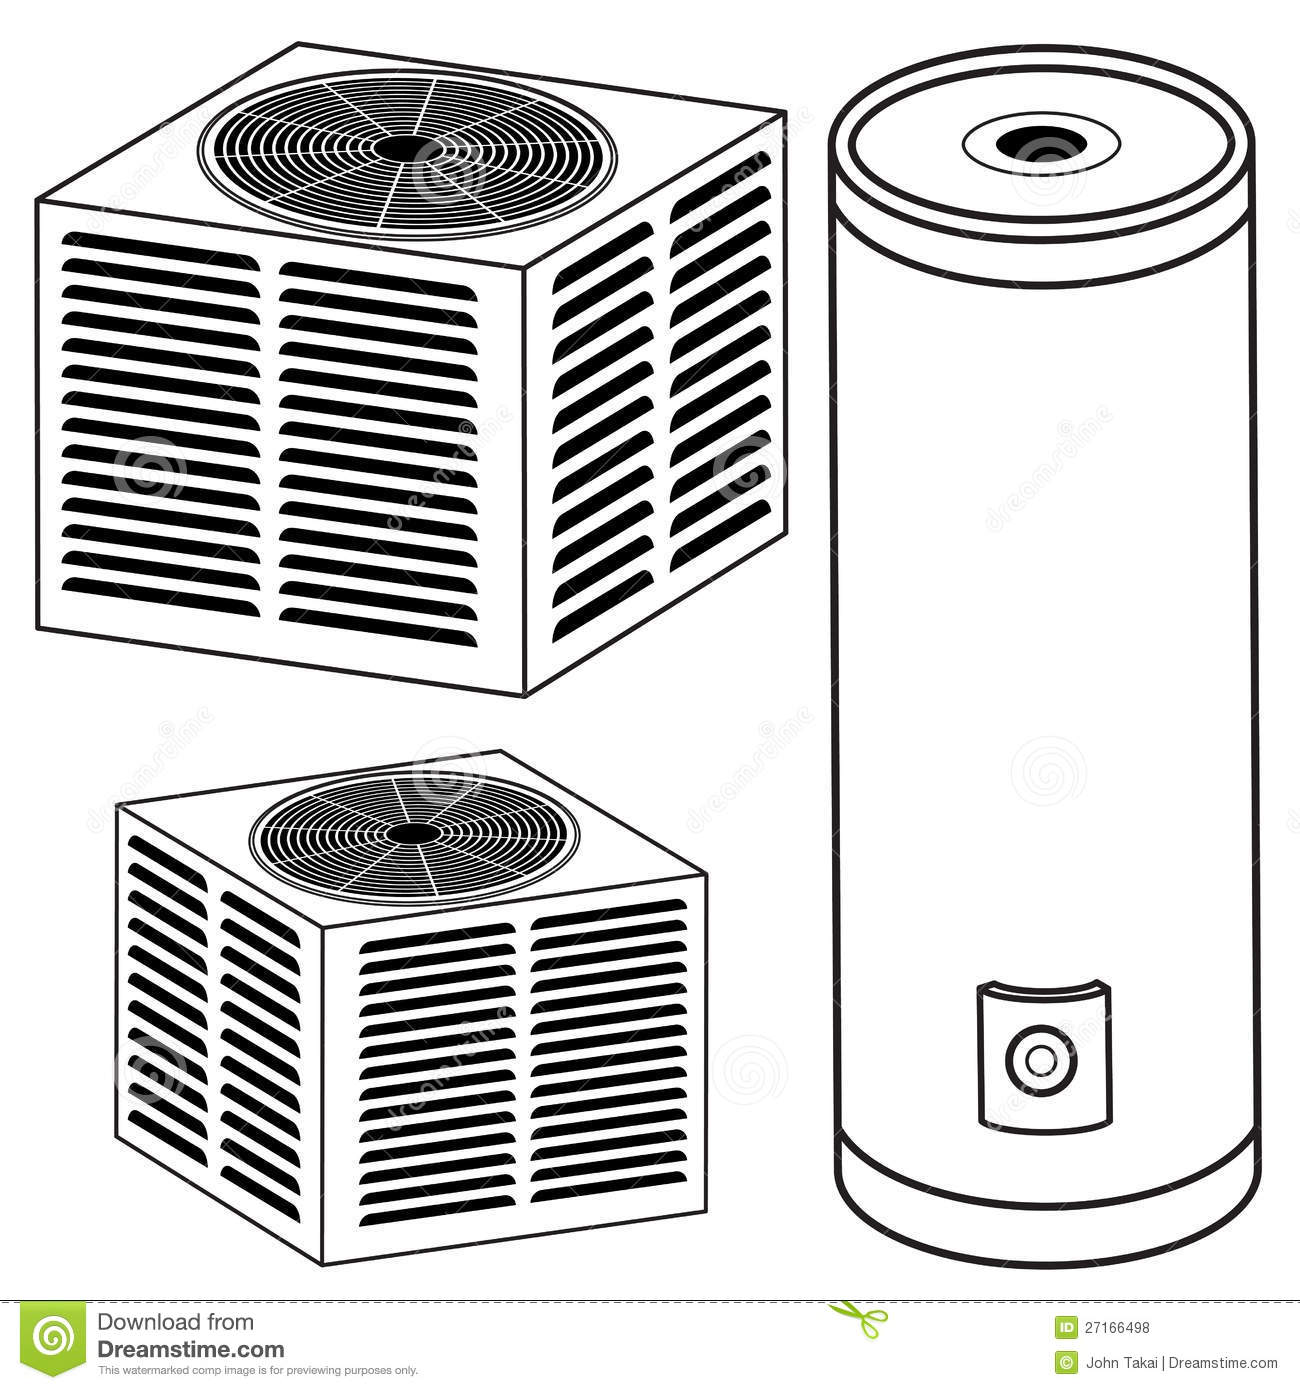 Heating and Air Conditioning System Clip Art.